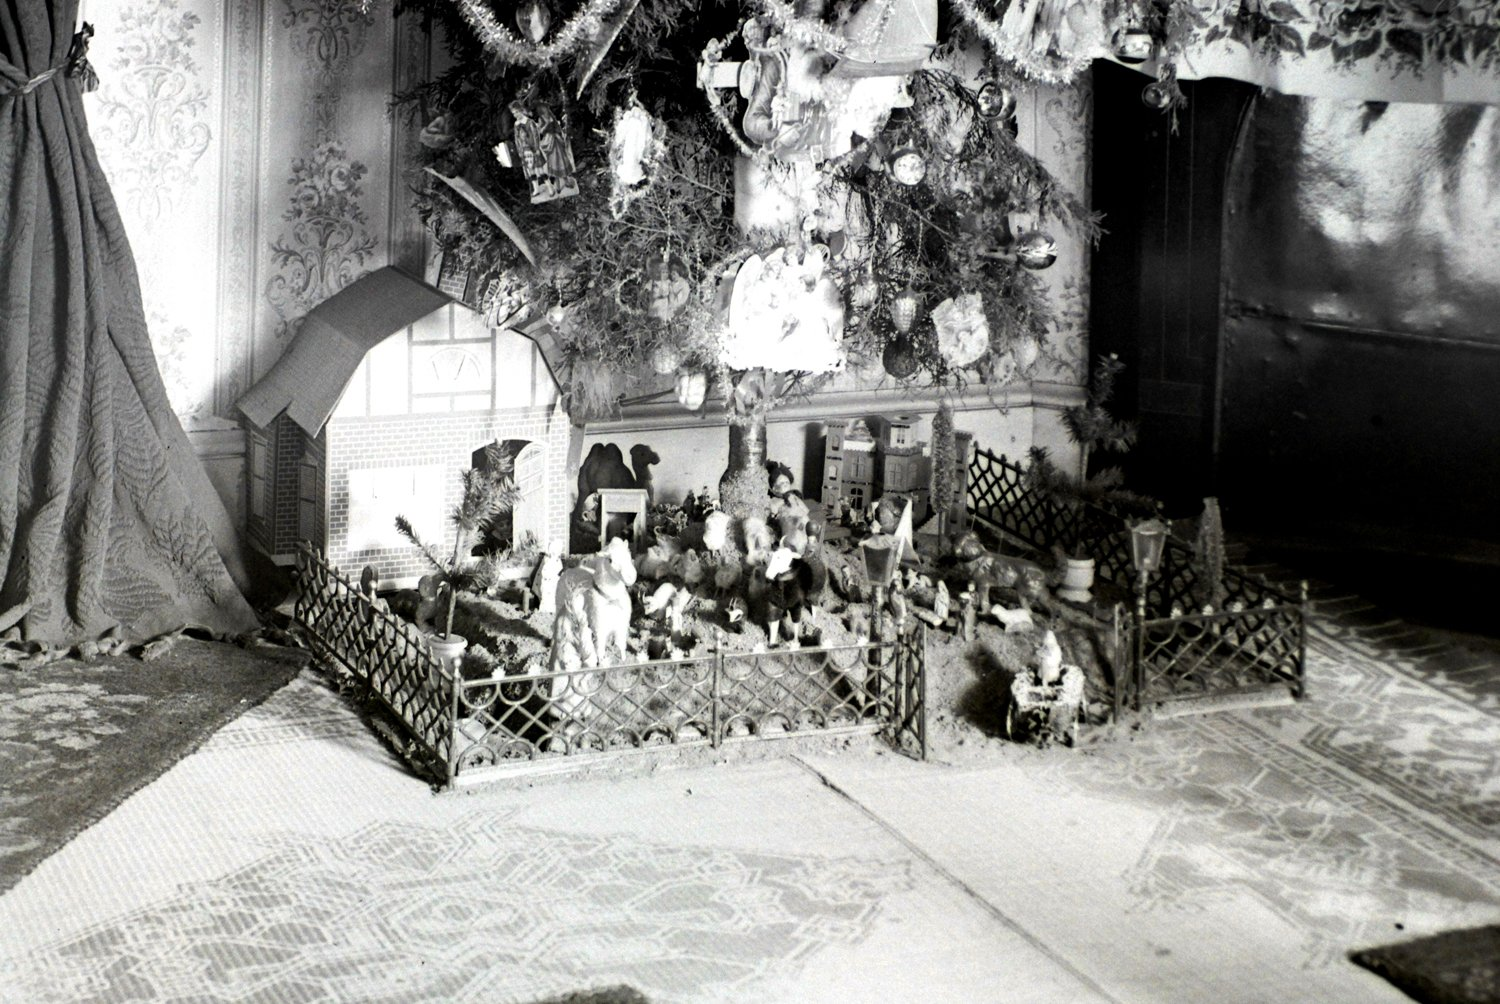 Vintage Christmas photographs from the 1930s.